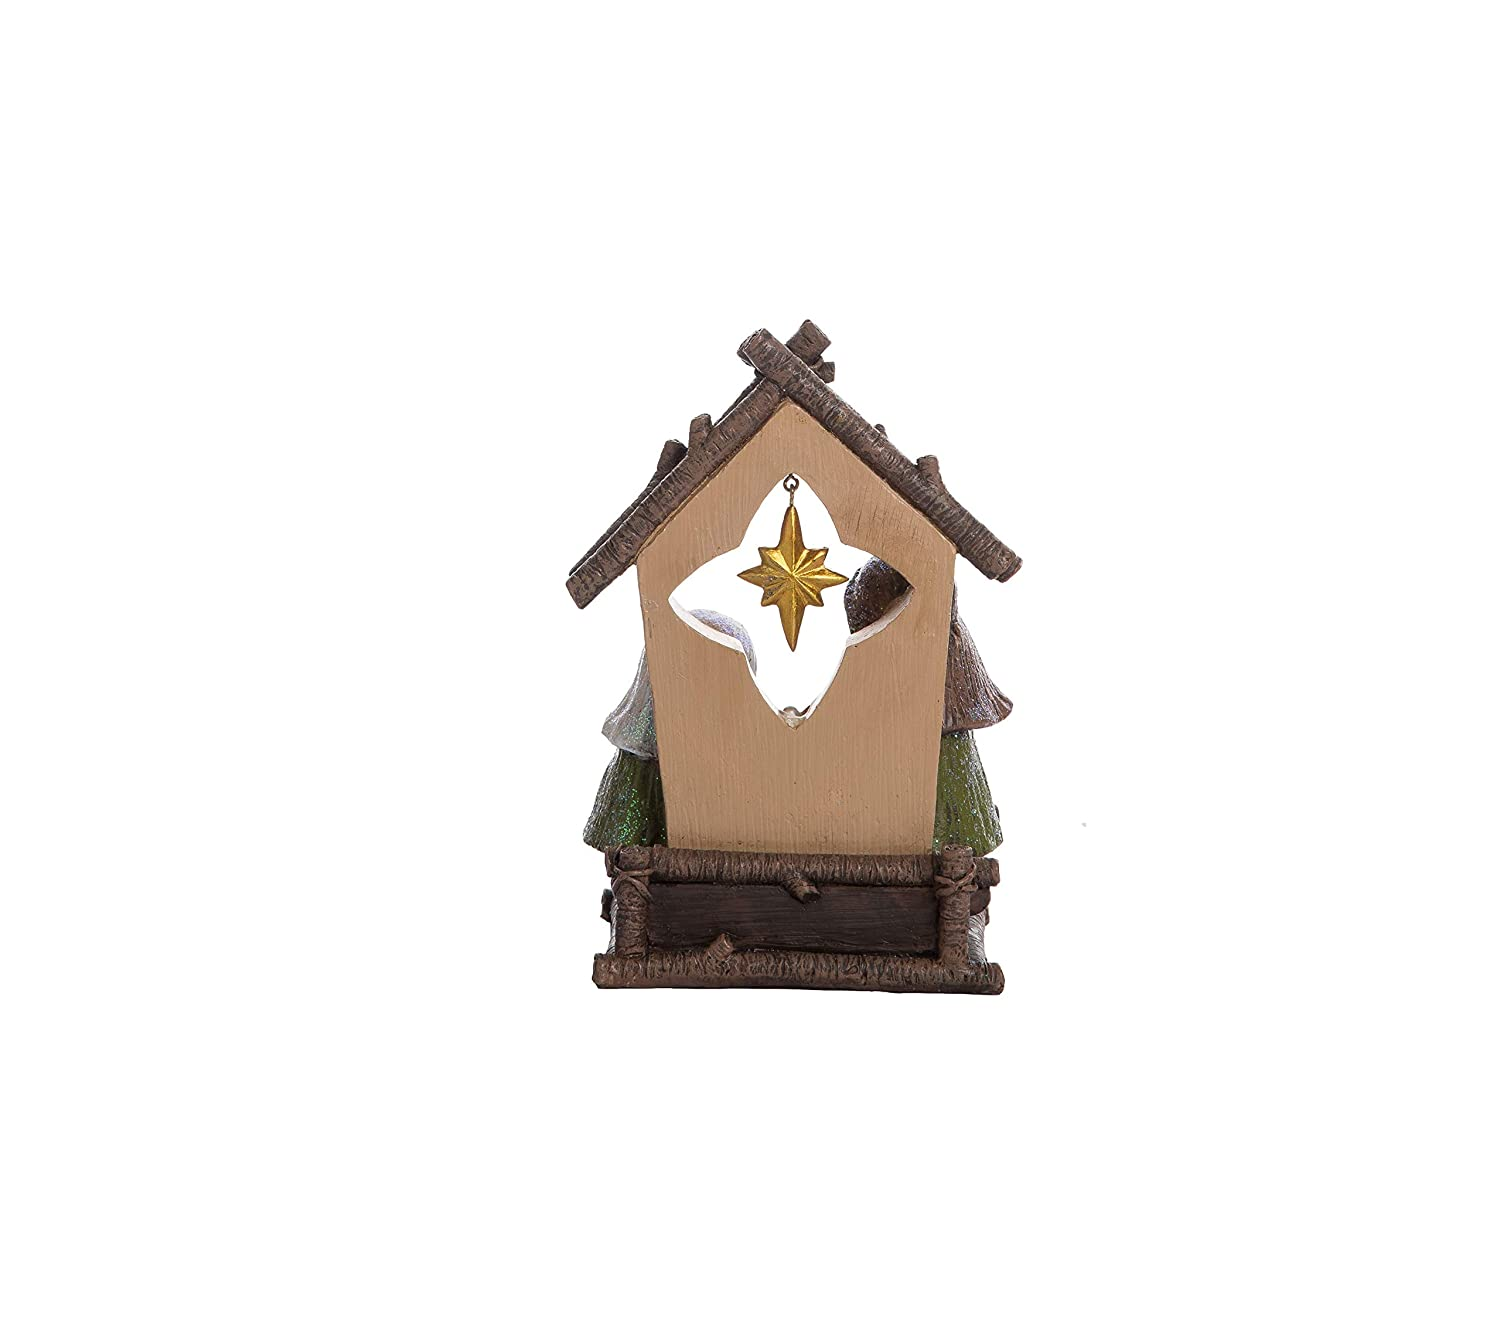 Transpac Imports D0689 Resin Light Up Kid Nativity Set Brown